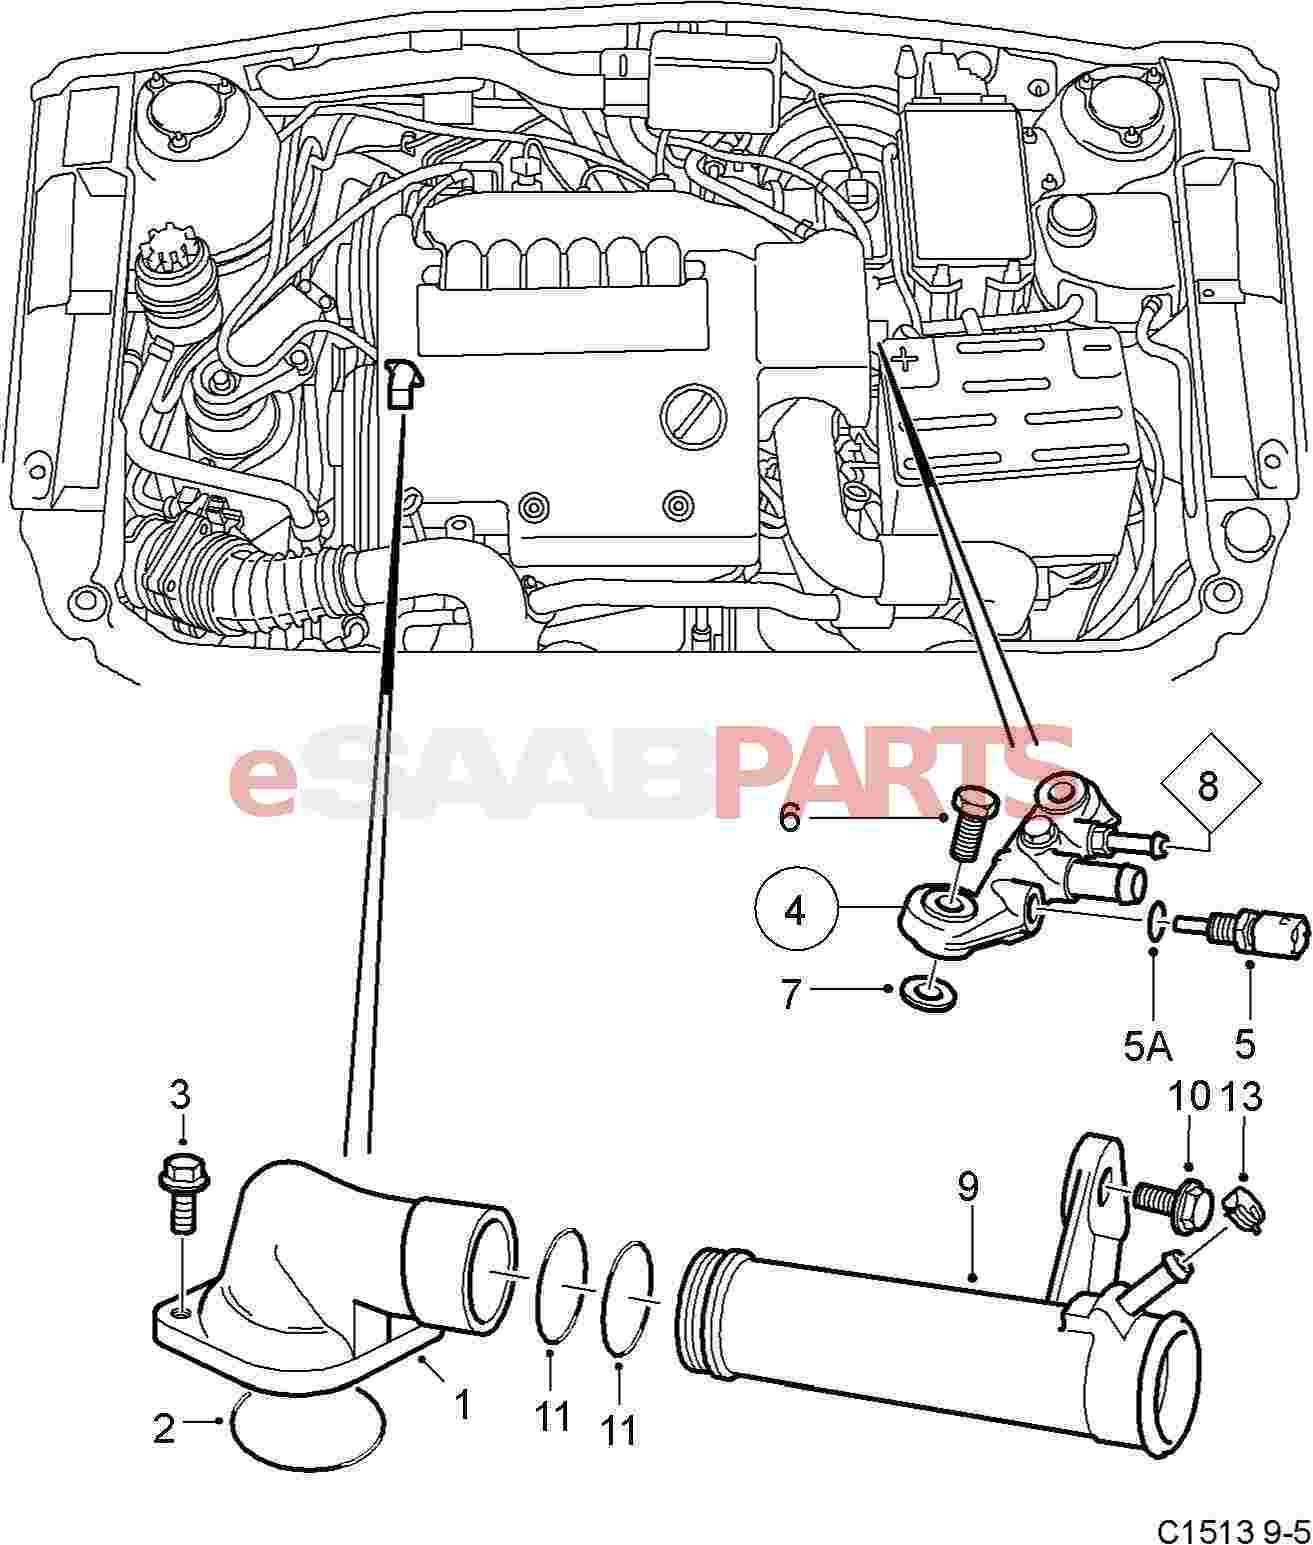 hight resolution of saab v6 engine diagram wiring diagram data today saab v6 engine diagram